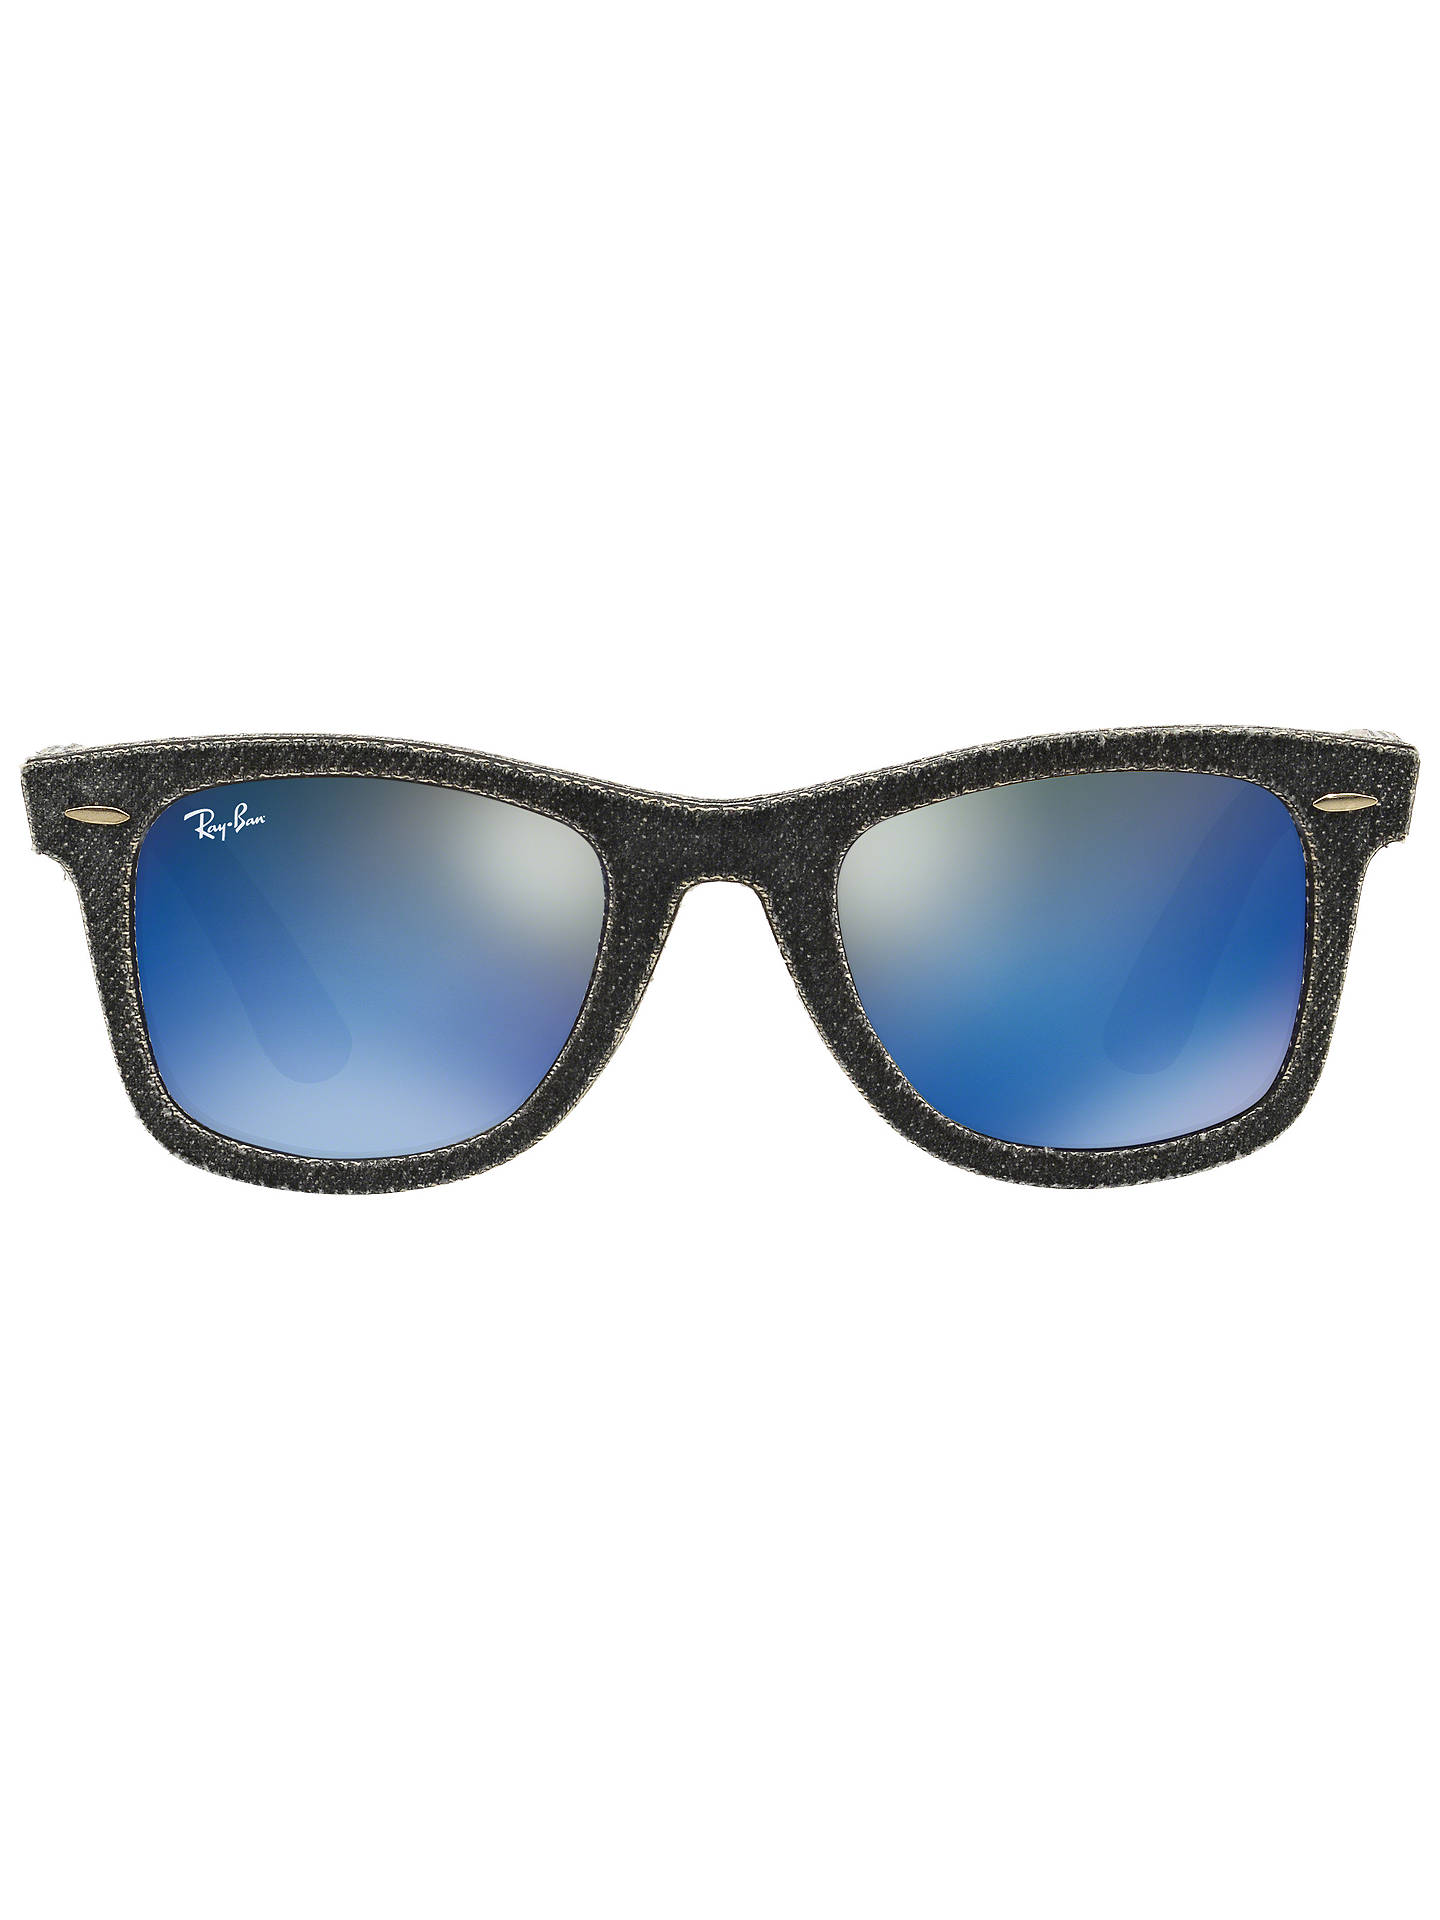 859646b9b793b ... shopping buyray ban rb2140 original wayfarer denim sunglasses grey  online at johnlewis 7b389 f9d02